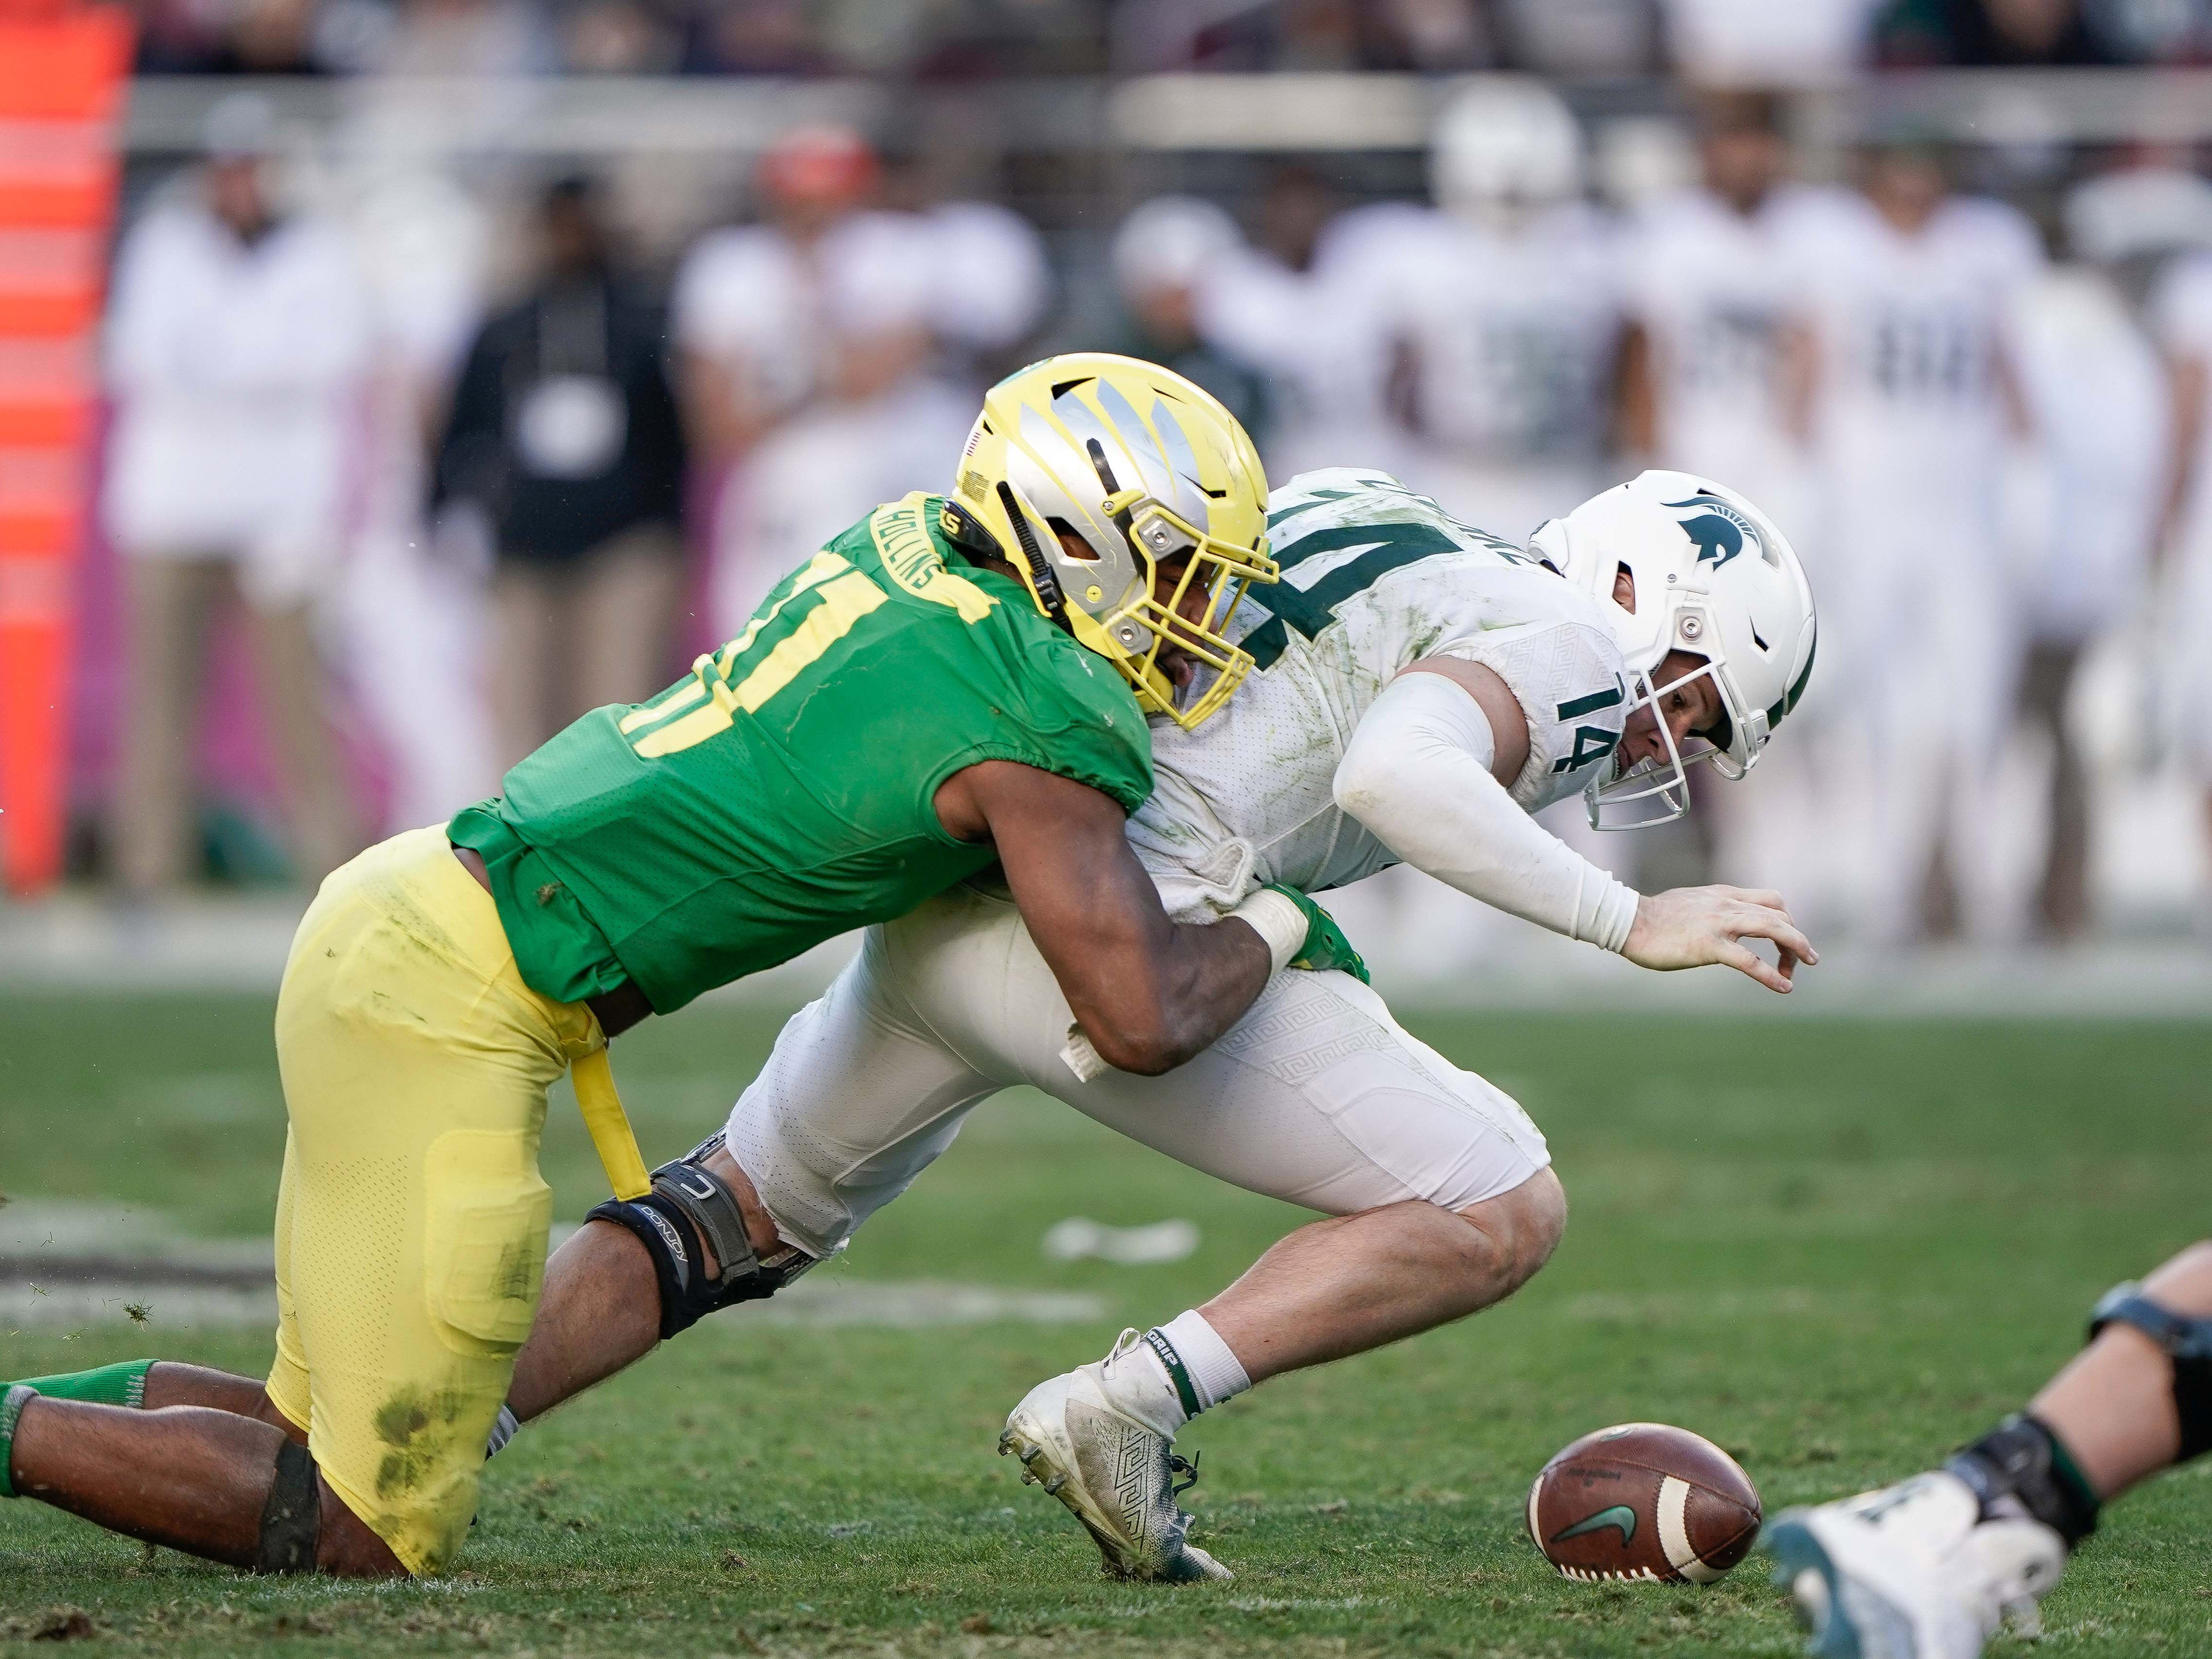 Oregon Ducks linebacker Justin Hollins (11) forces a fumble by Michigan State Spartans quarterback Brian Lewerke (14) during the fourth quarter at Levi's Stadium.